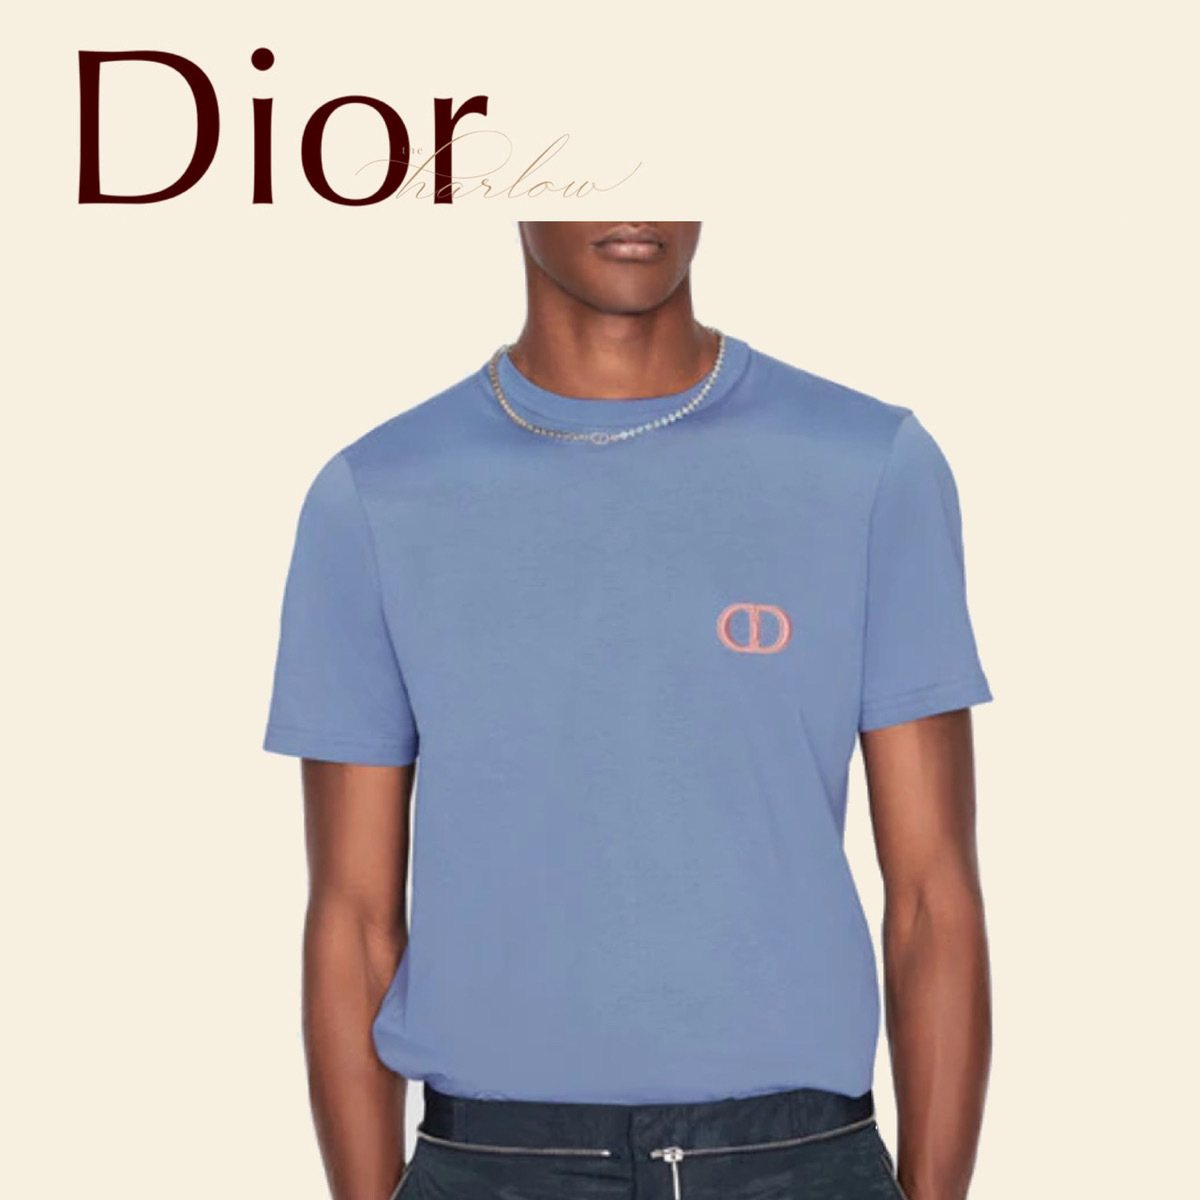 DIOR ICON Tシャツ トップス 半袖 綿 青 CD ロゴ 男 新作 直営店 (Dior/Tシャツ・カットソー) 64646160